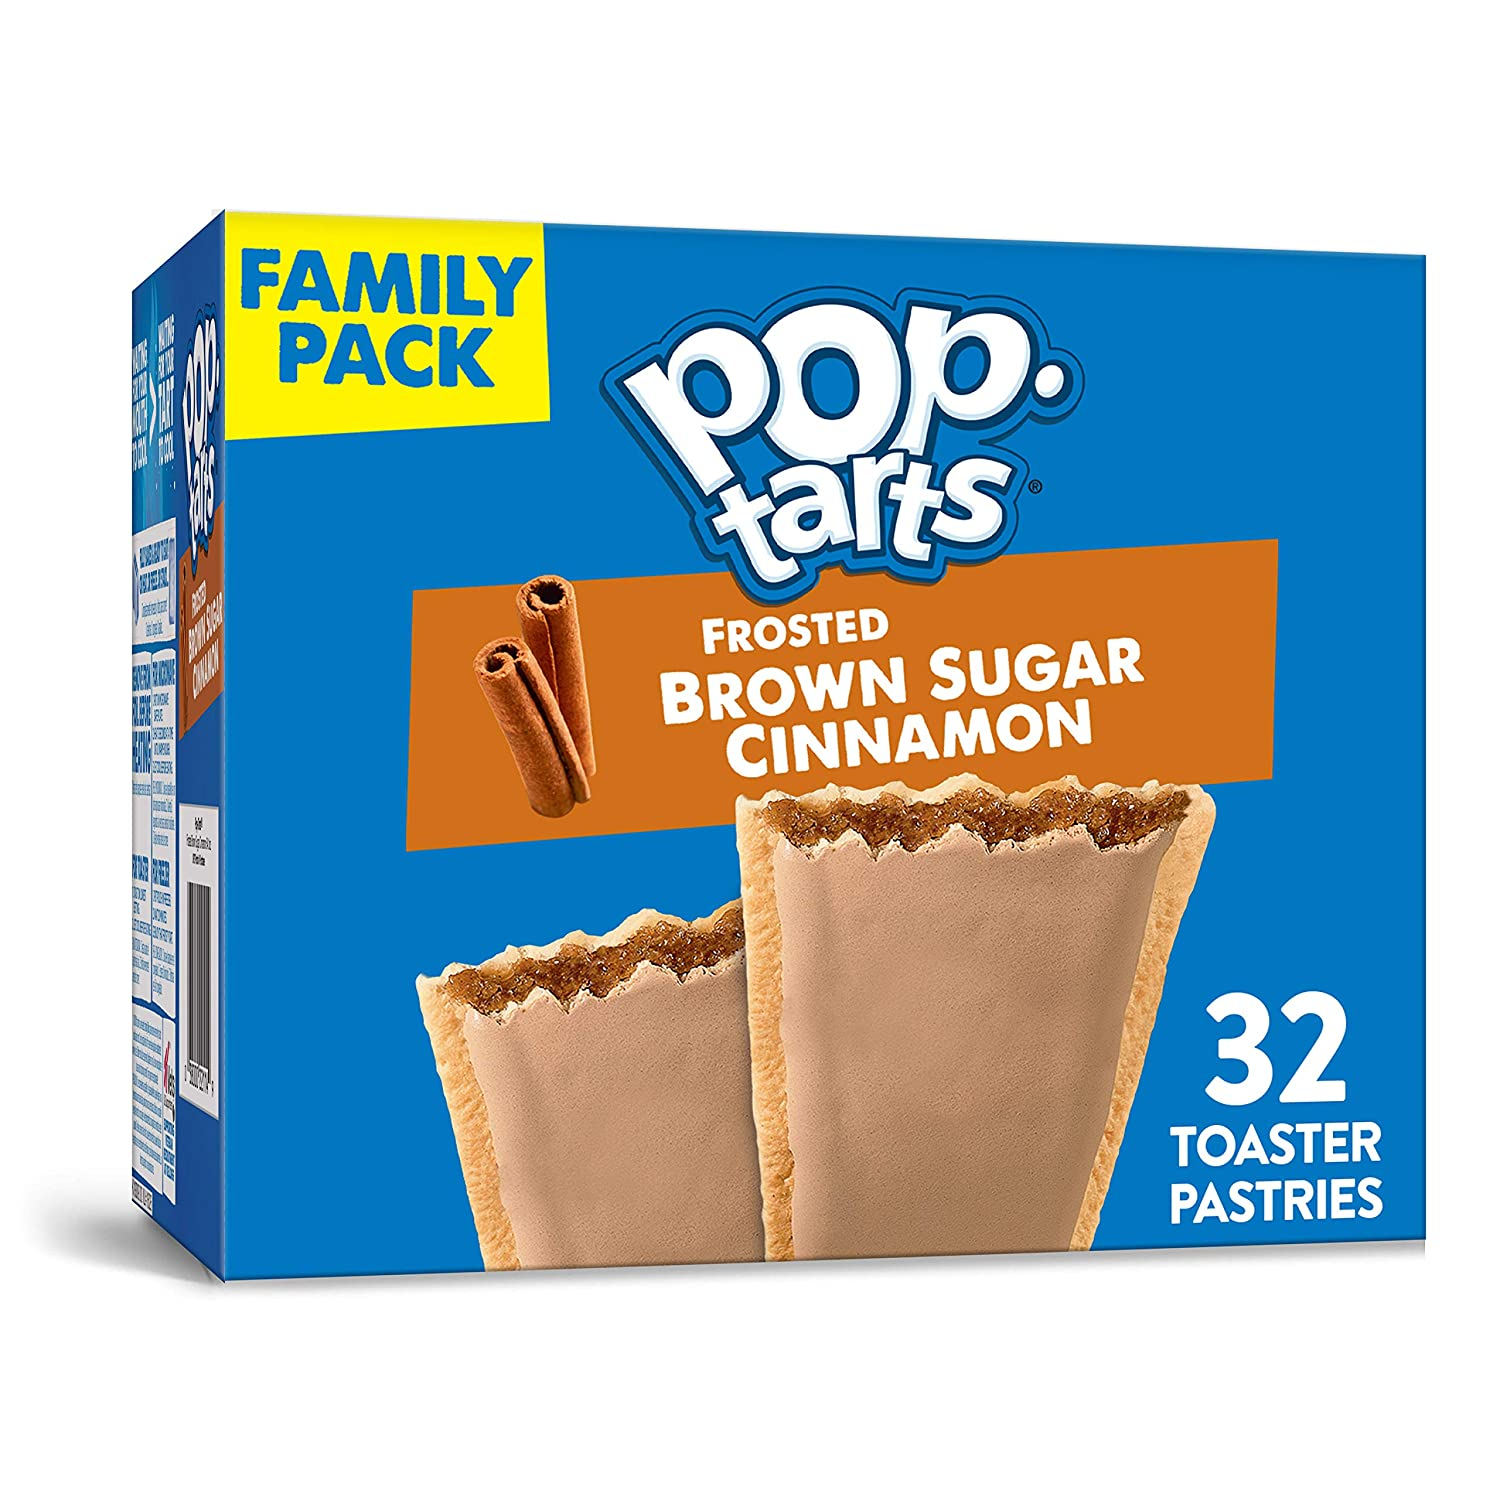 Kellogg's Pop-Tarts Frosted Brown Sugar Cinnamon - Toaster Pastries Breakfast for Kids, Family Pack (32 Count)